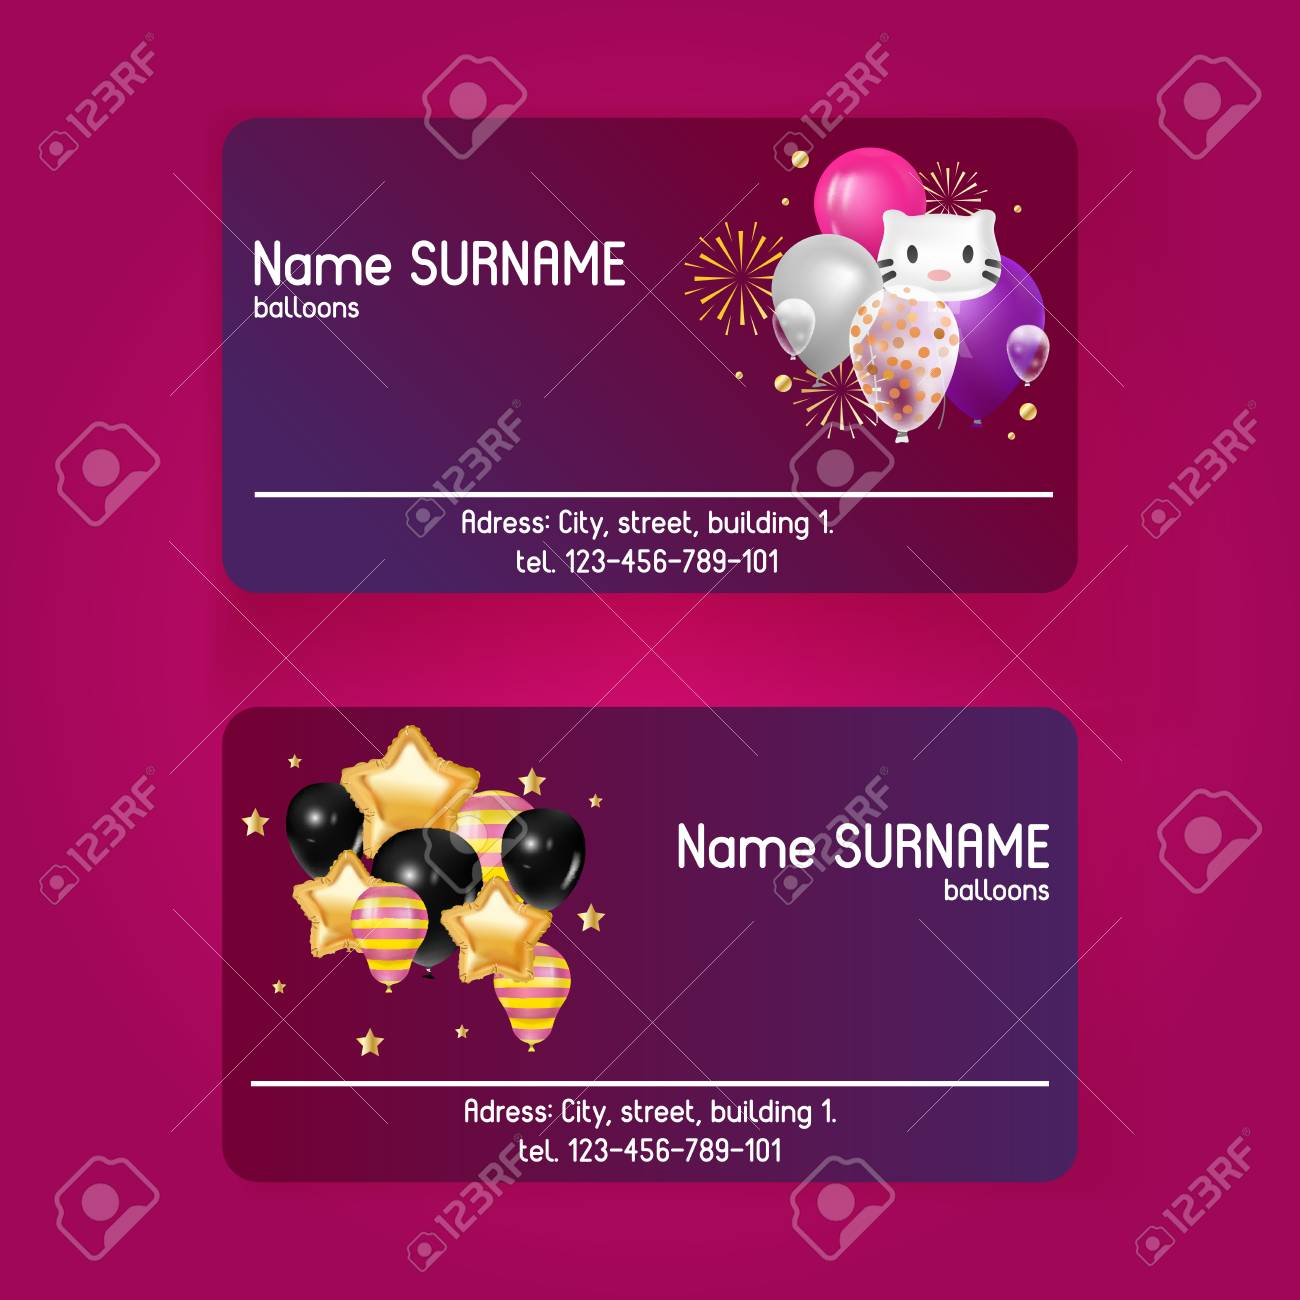 Ballooon Vector Business Card Celebrating Birthday Party Anniversary